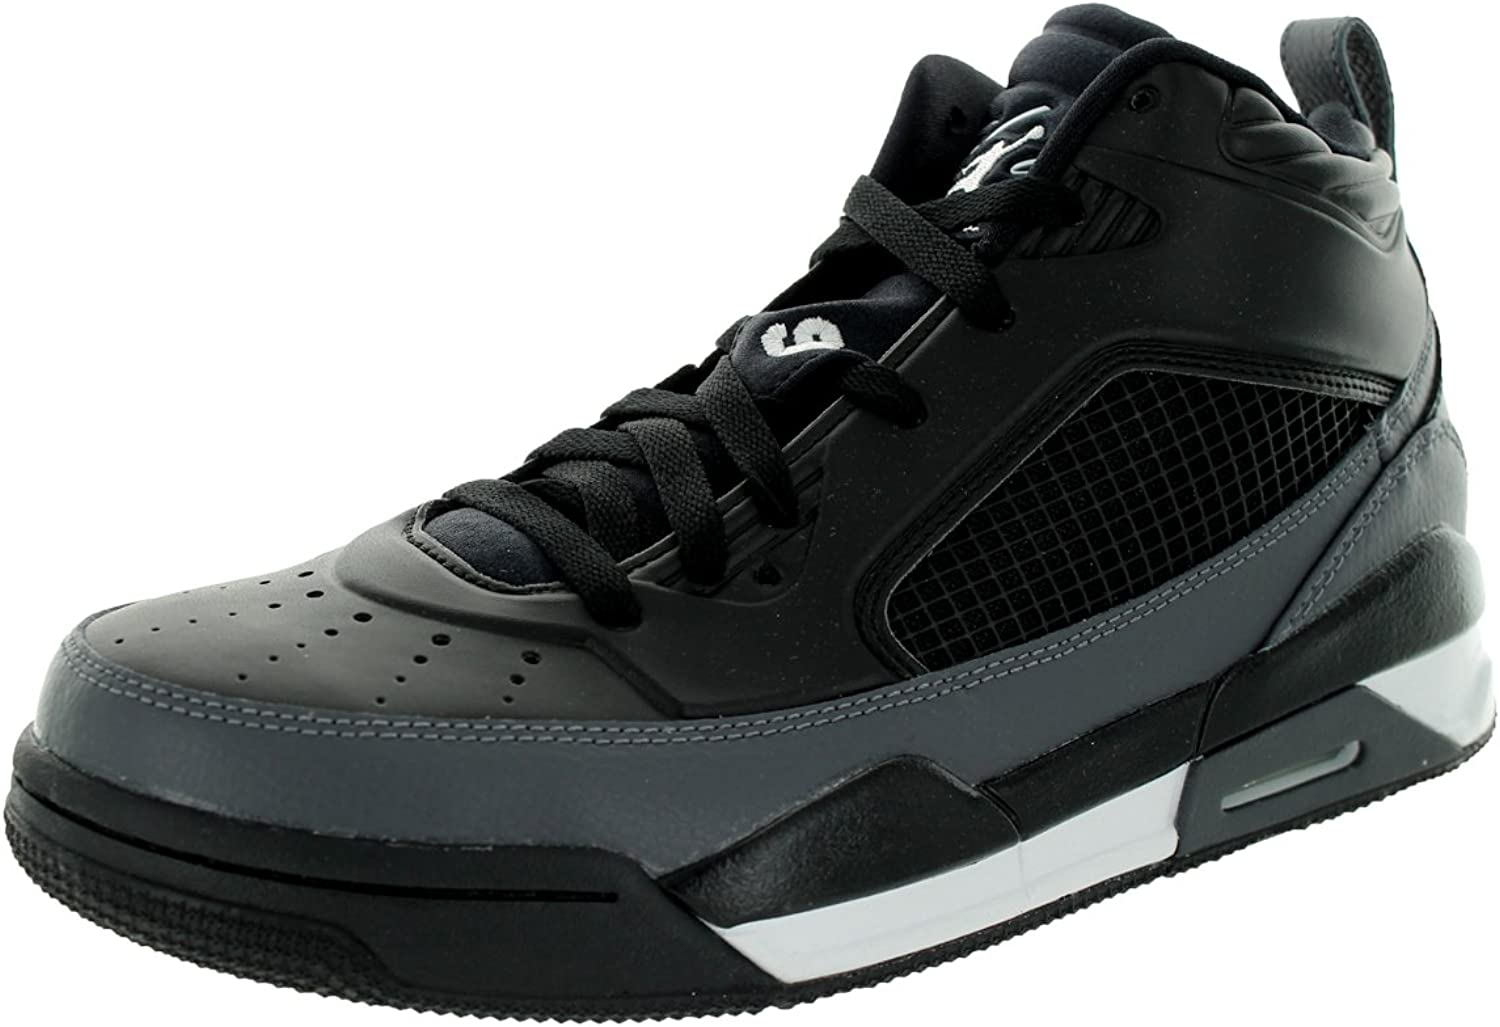 Nike Jordan Men's Jordan Flight 9.5 Basketball shoes